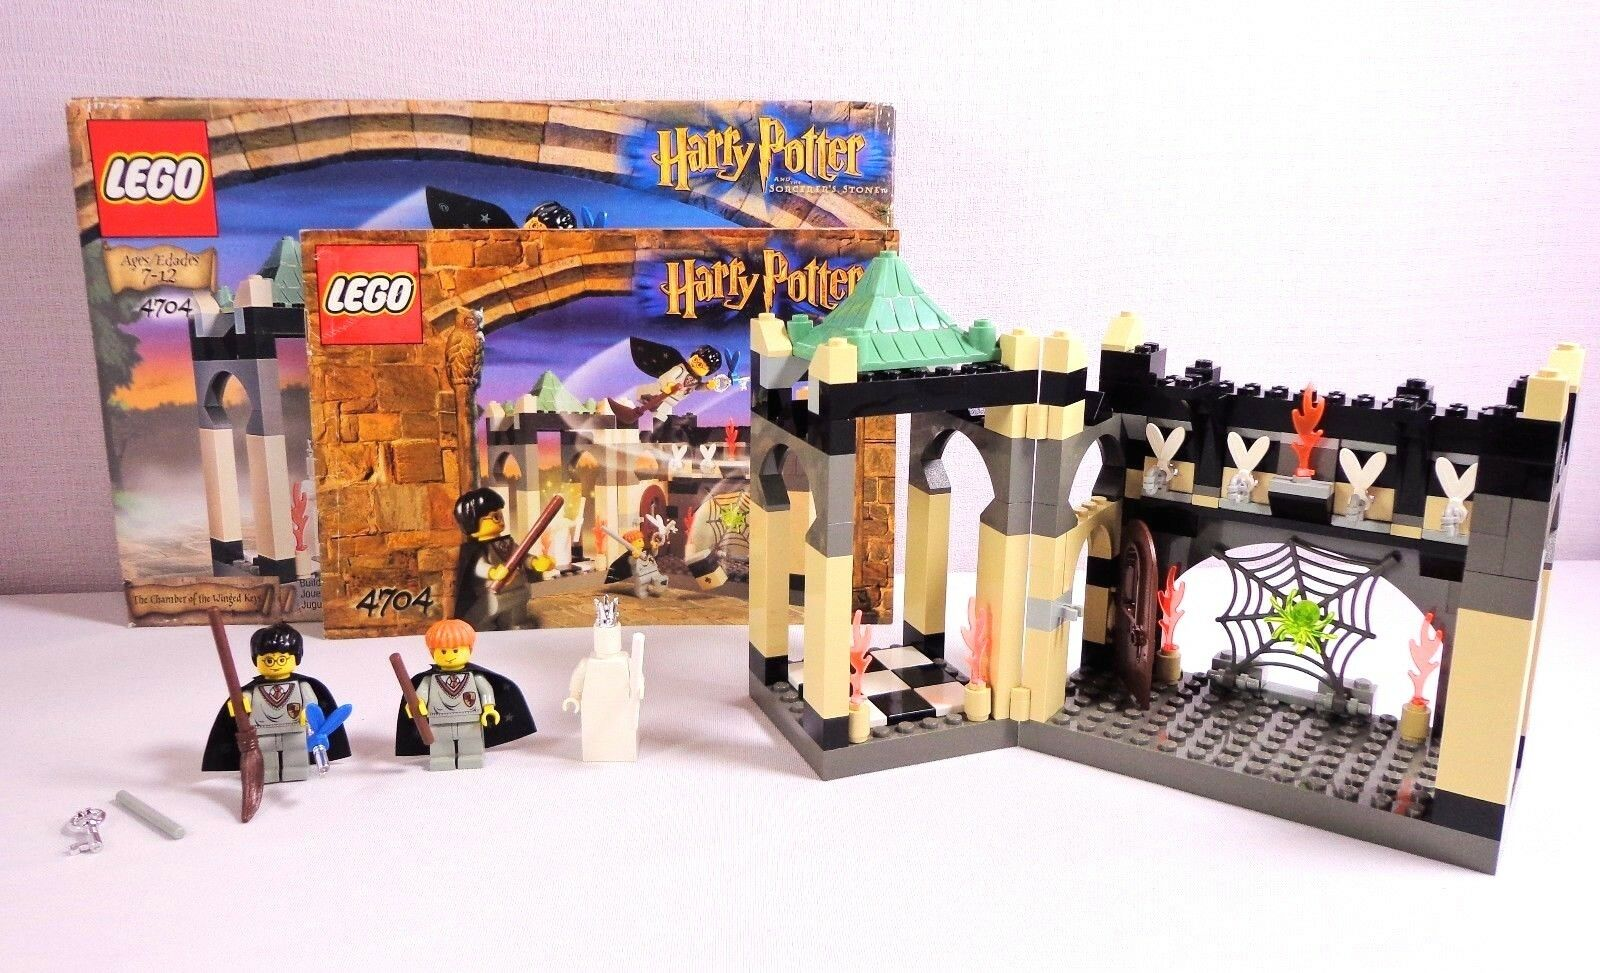 Lego Harry Potter Set 4704 The Chamber Room of the Winged Keys Complete with Box